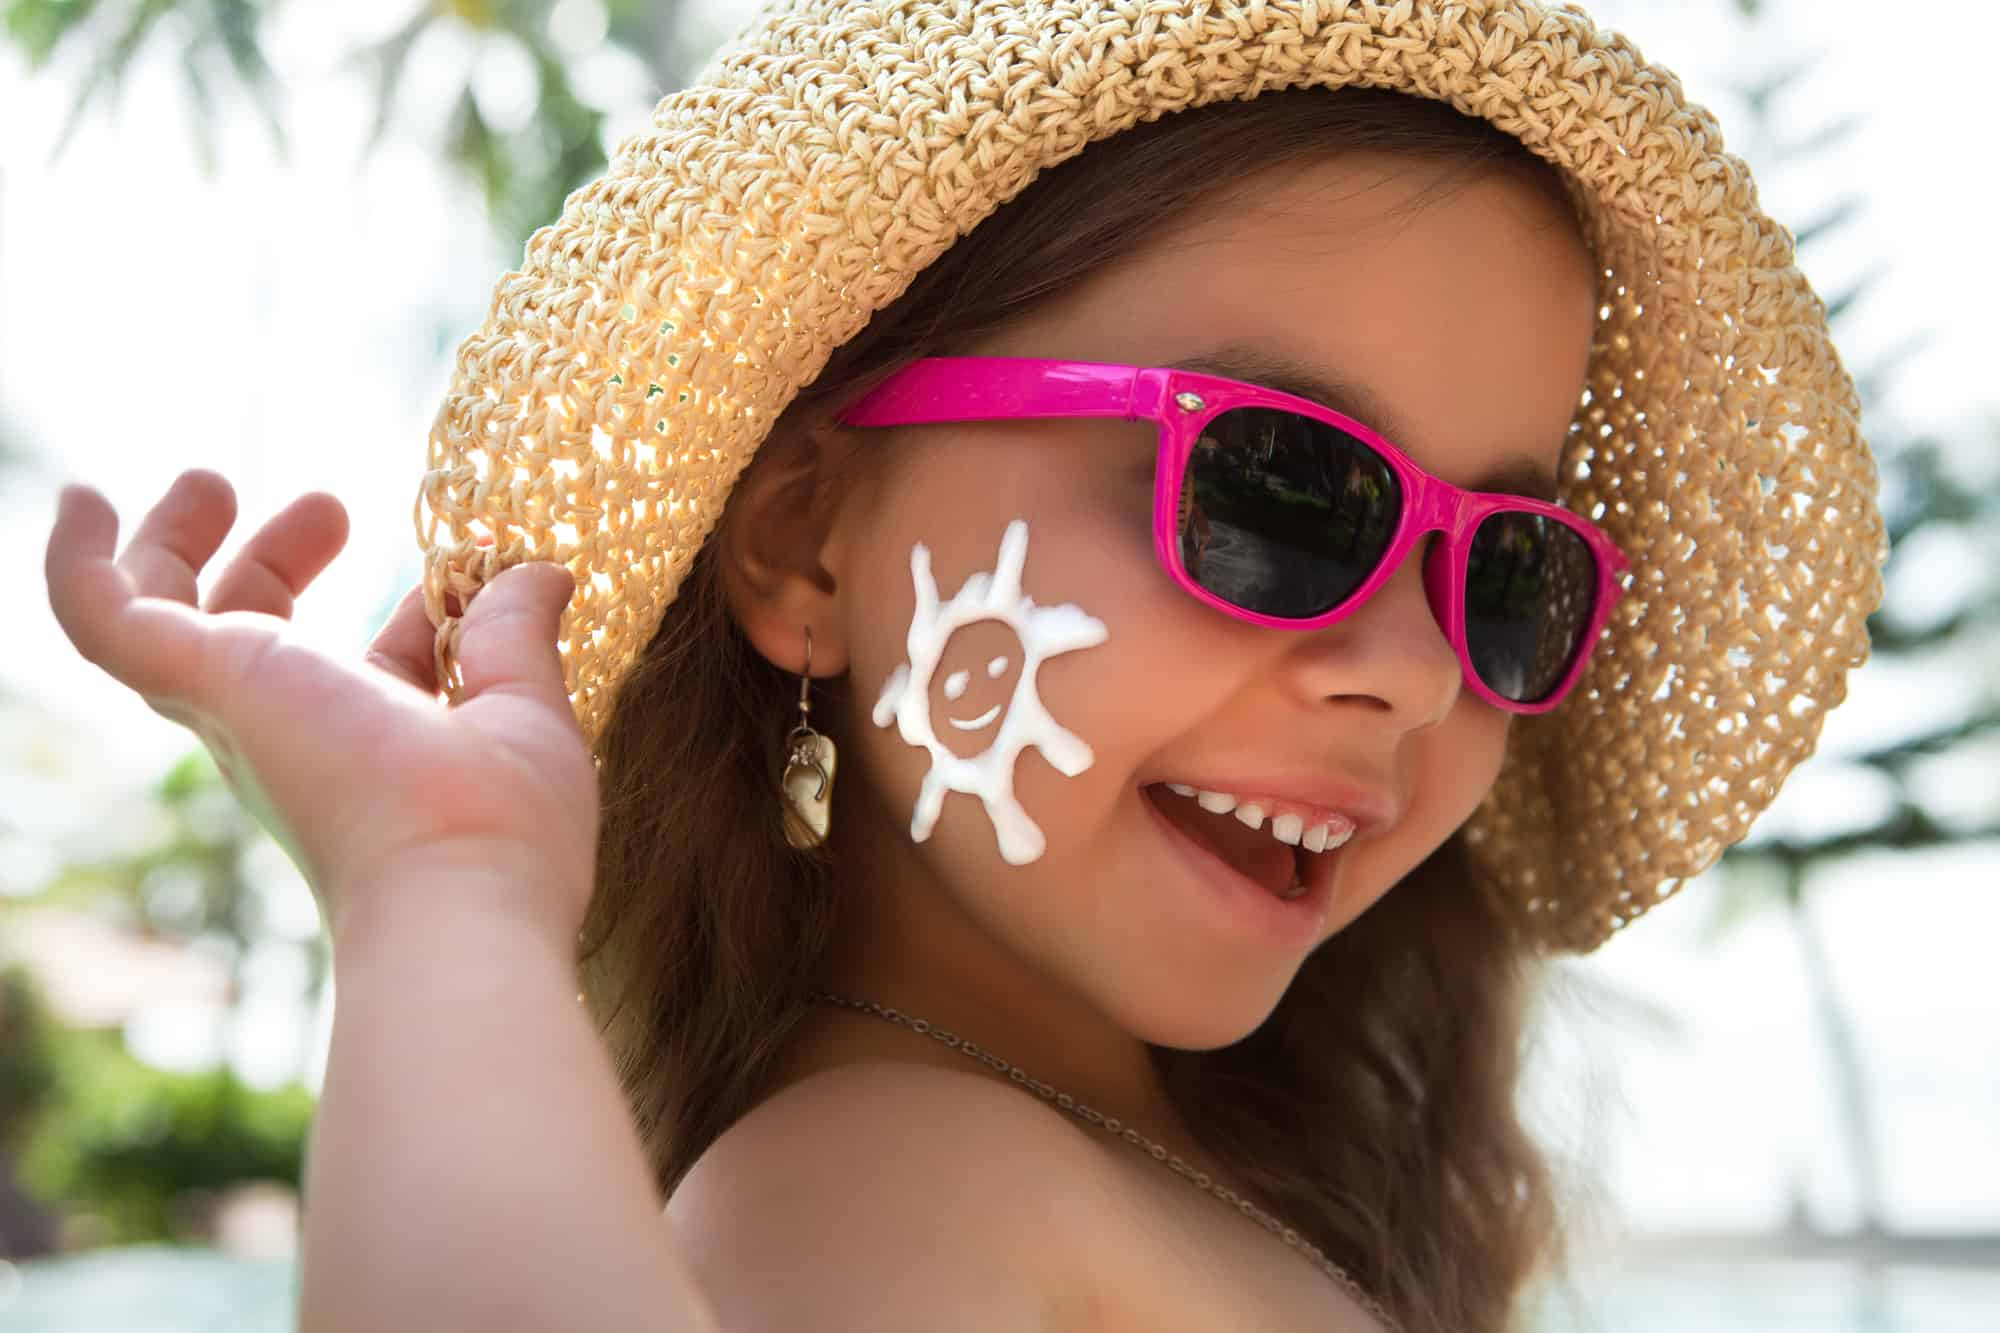 adorable little girl in a hat with sunglasses and sunscreen